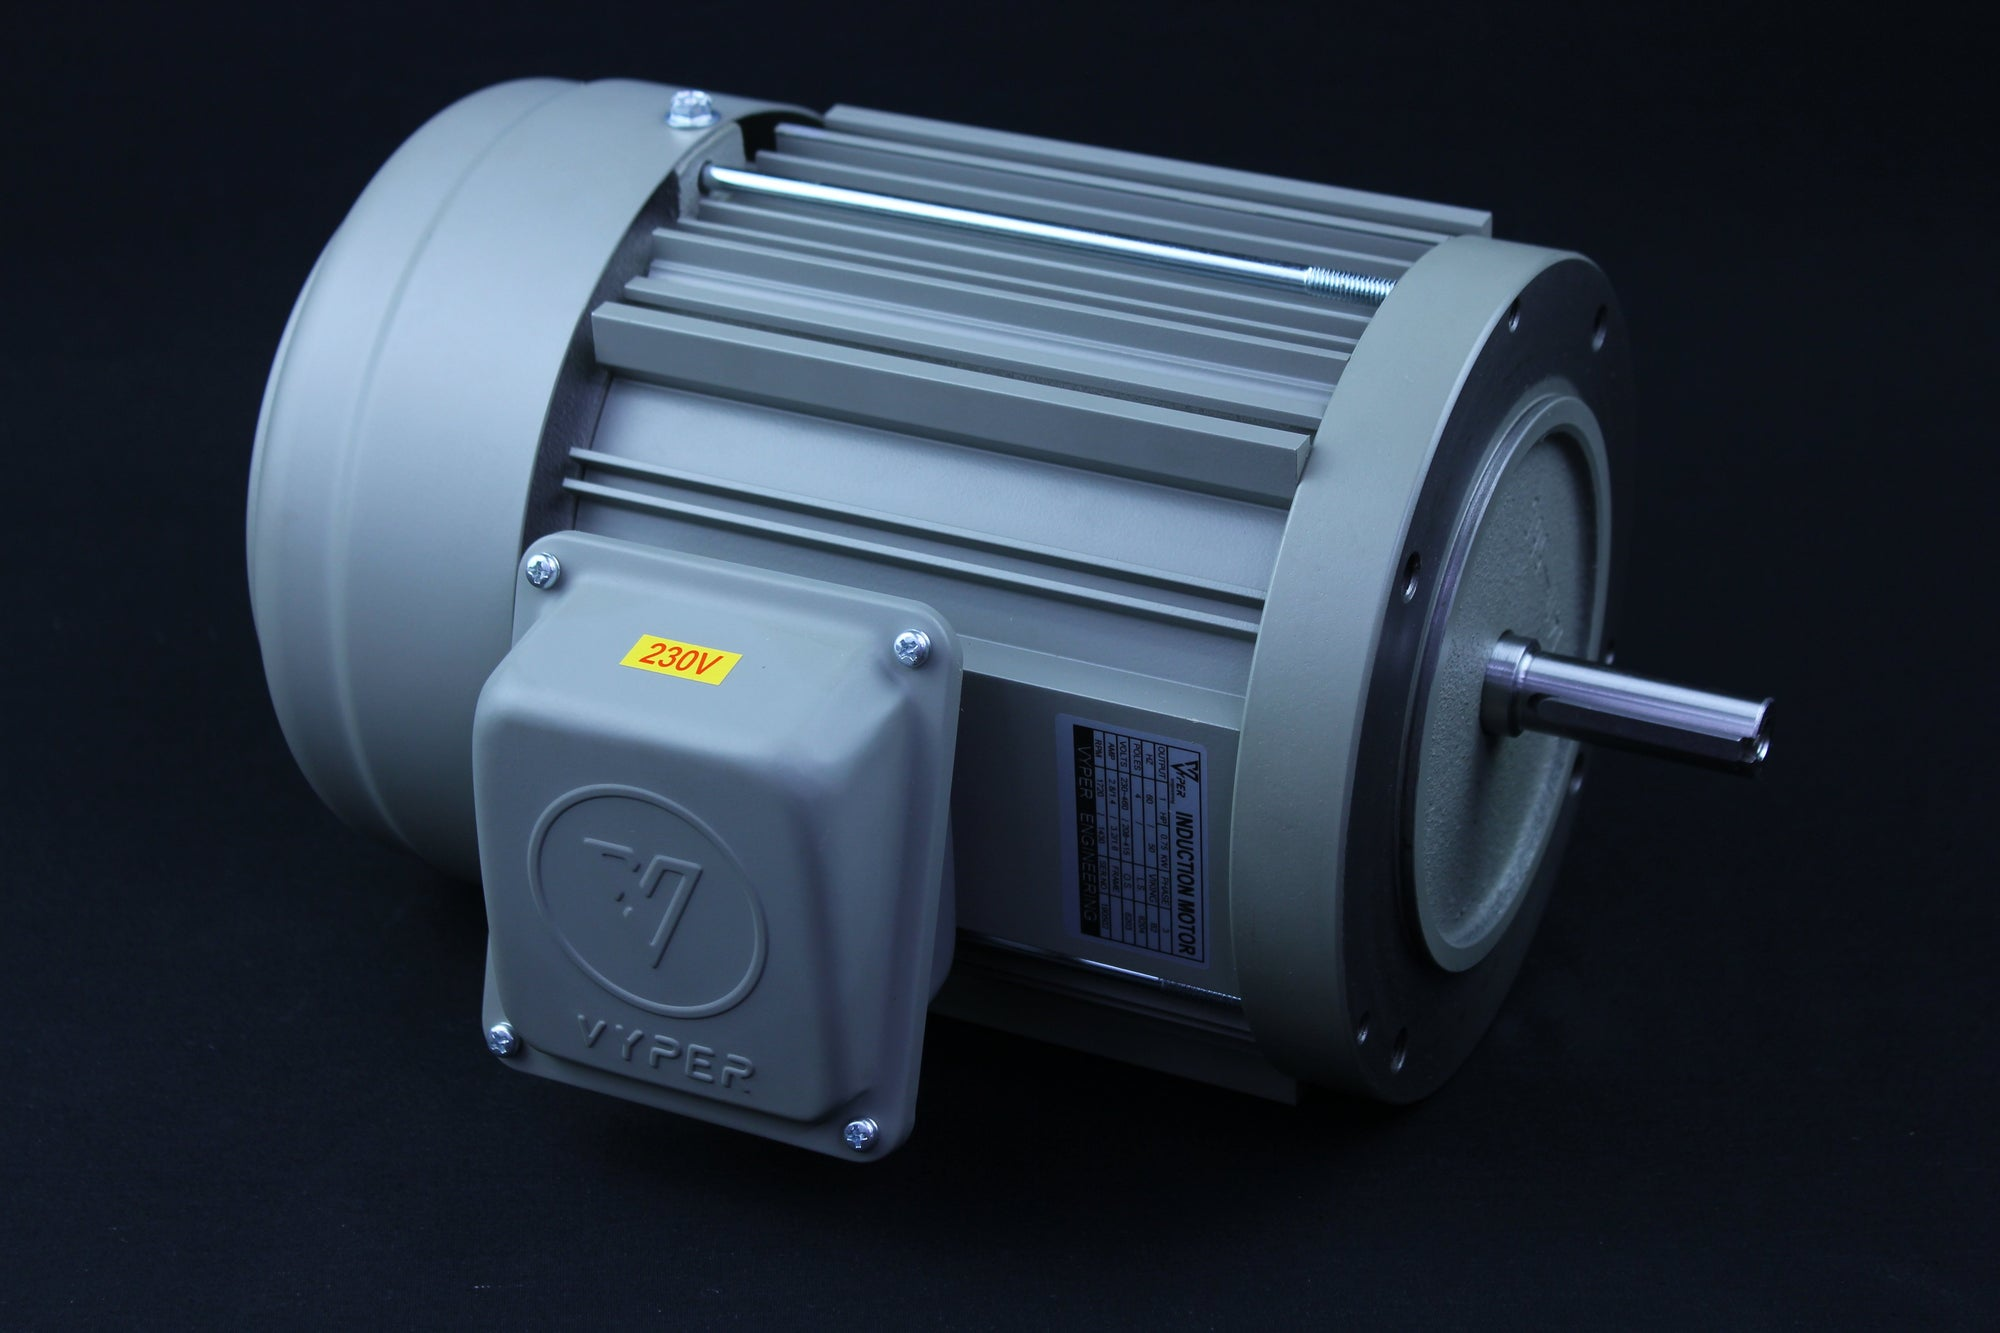 Three Phase - 1HP - 208-230/460V - 3000/3600RPM - 50/60HZ - 56 - Foot - IE1